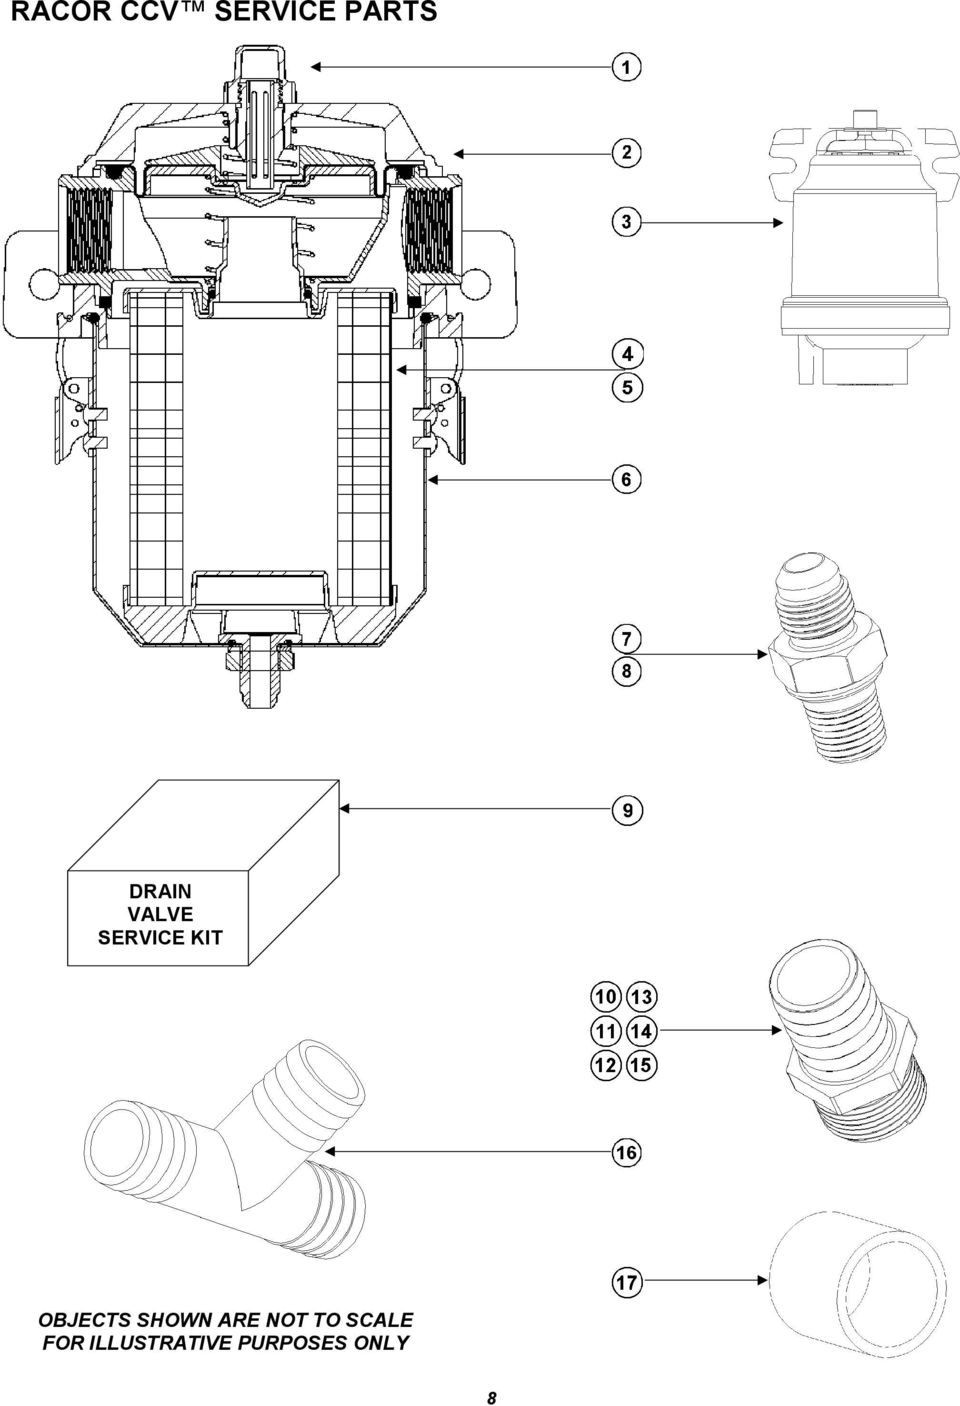 Racor CCV. Crankcase Ventilation Filter Systems